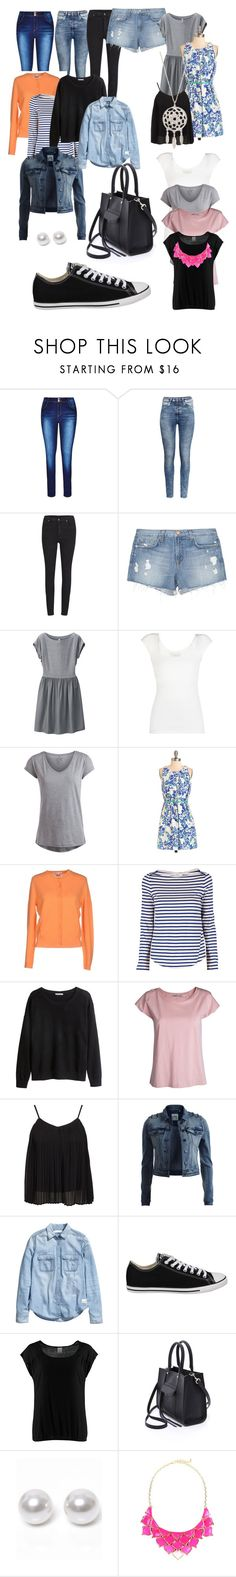 """""""Packing for my Holiday"""" by style-hue ❤ liked on Polyvore featuring City Chic, H&M, Cheap Monday, J Brand, Uniqlo, BCBGMAXAZRIA, Pieces, Lamberto Losani, A.L.C. and Acne Studios"""